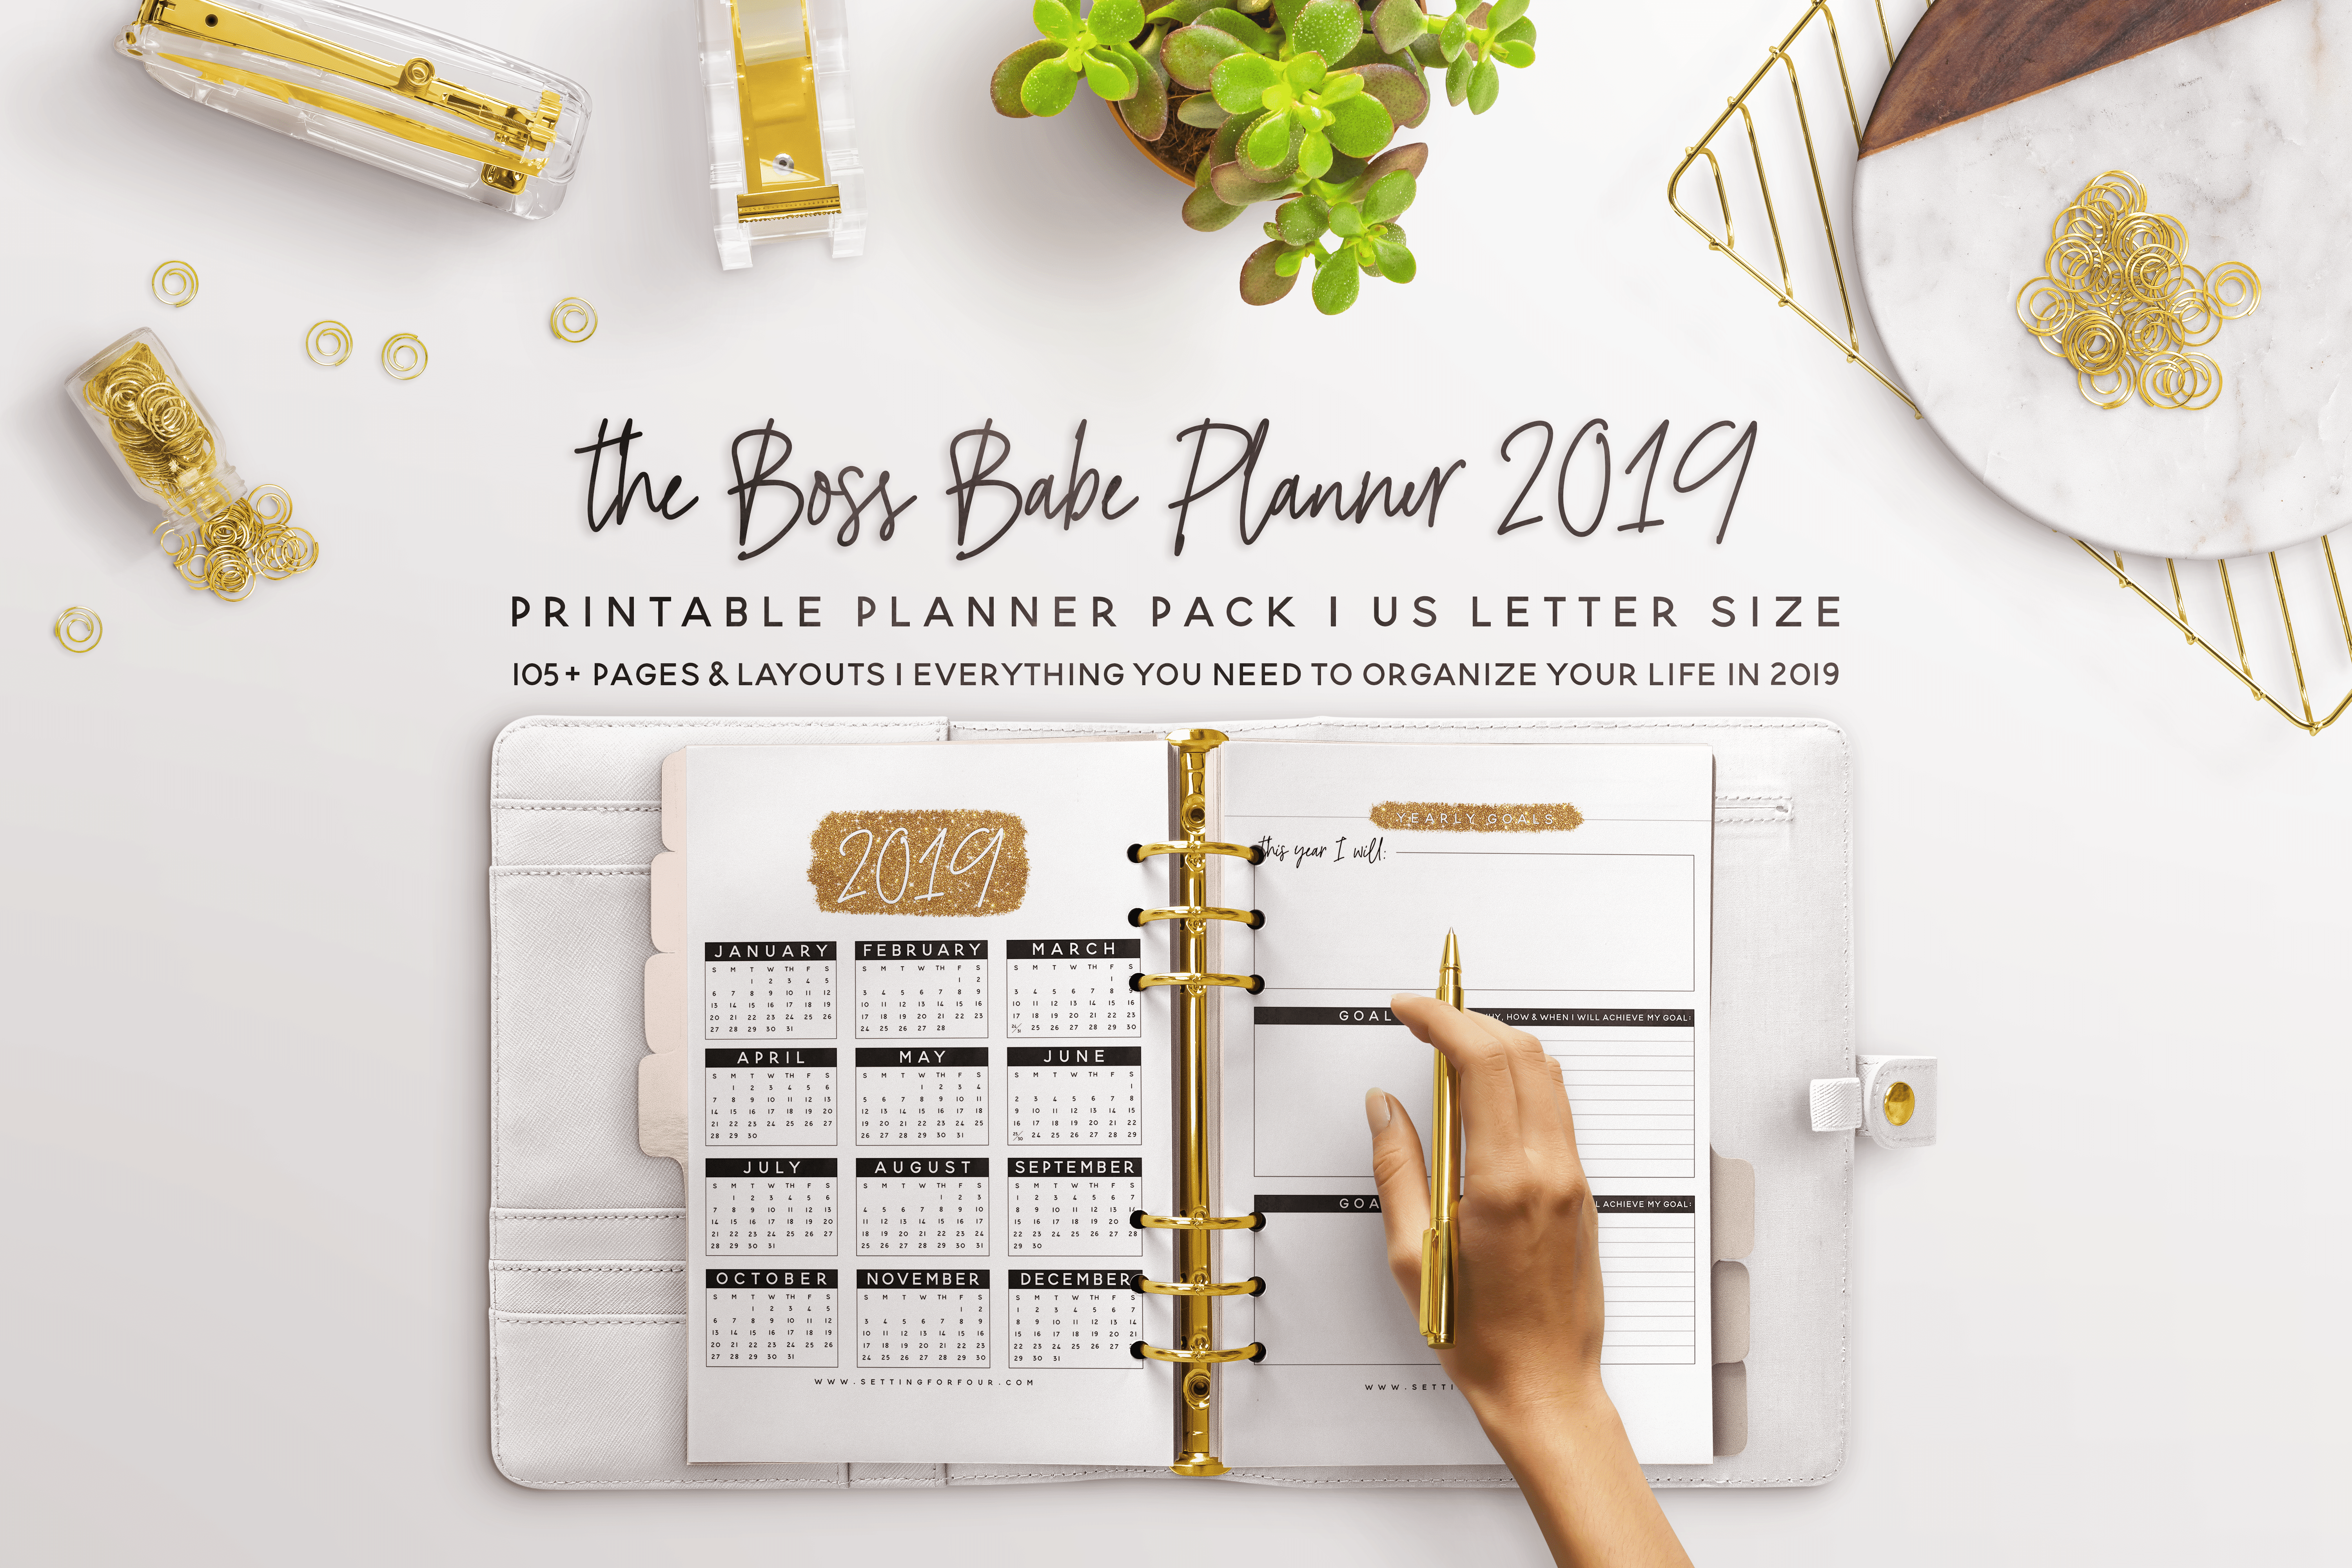 2019 Boss Babe Planner 106 Pages